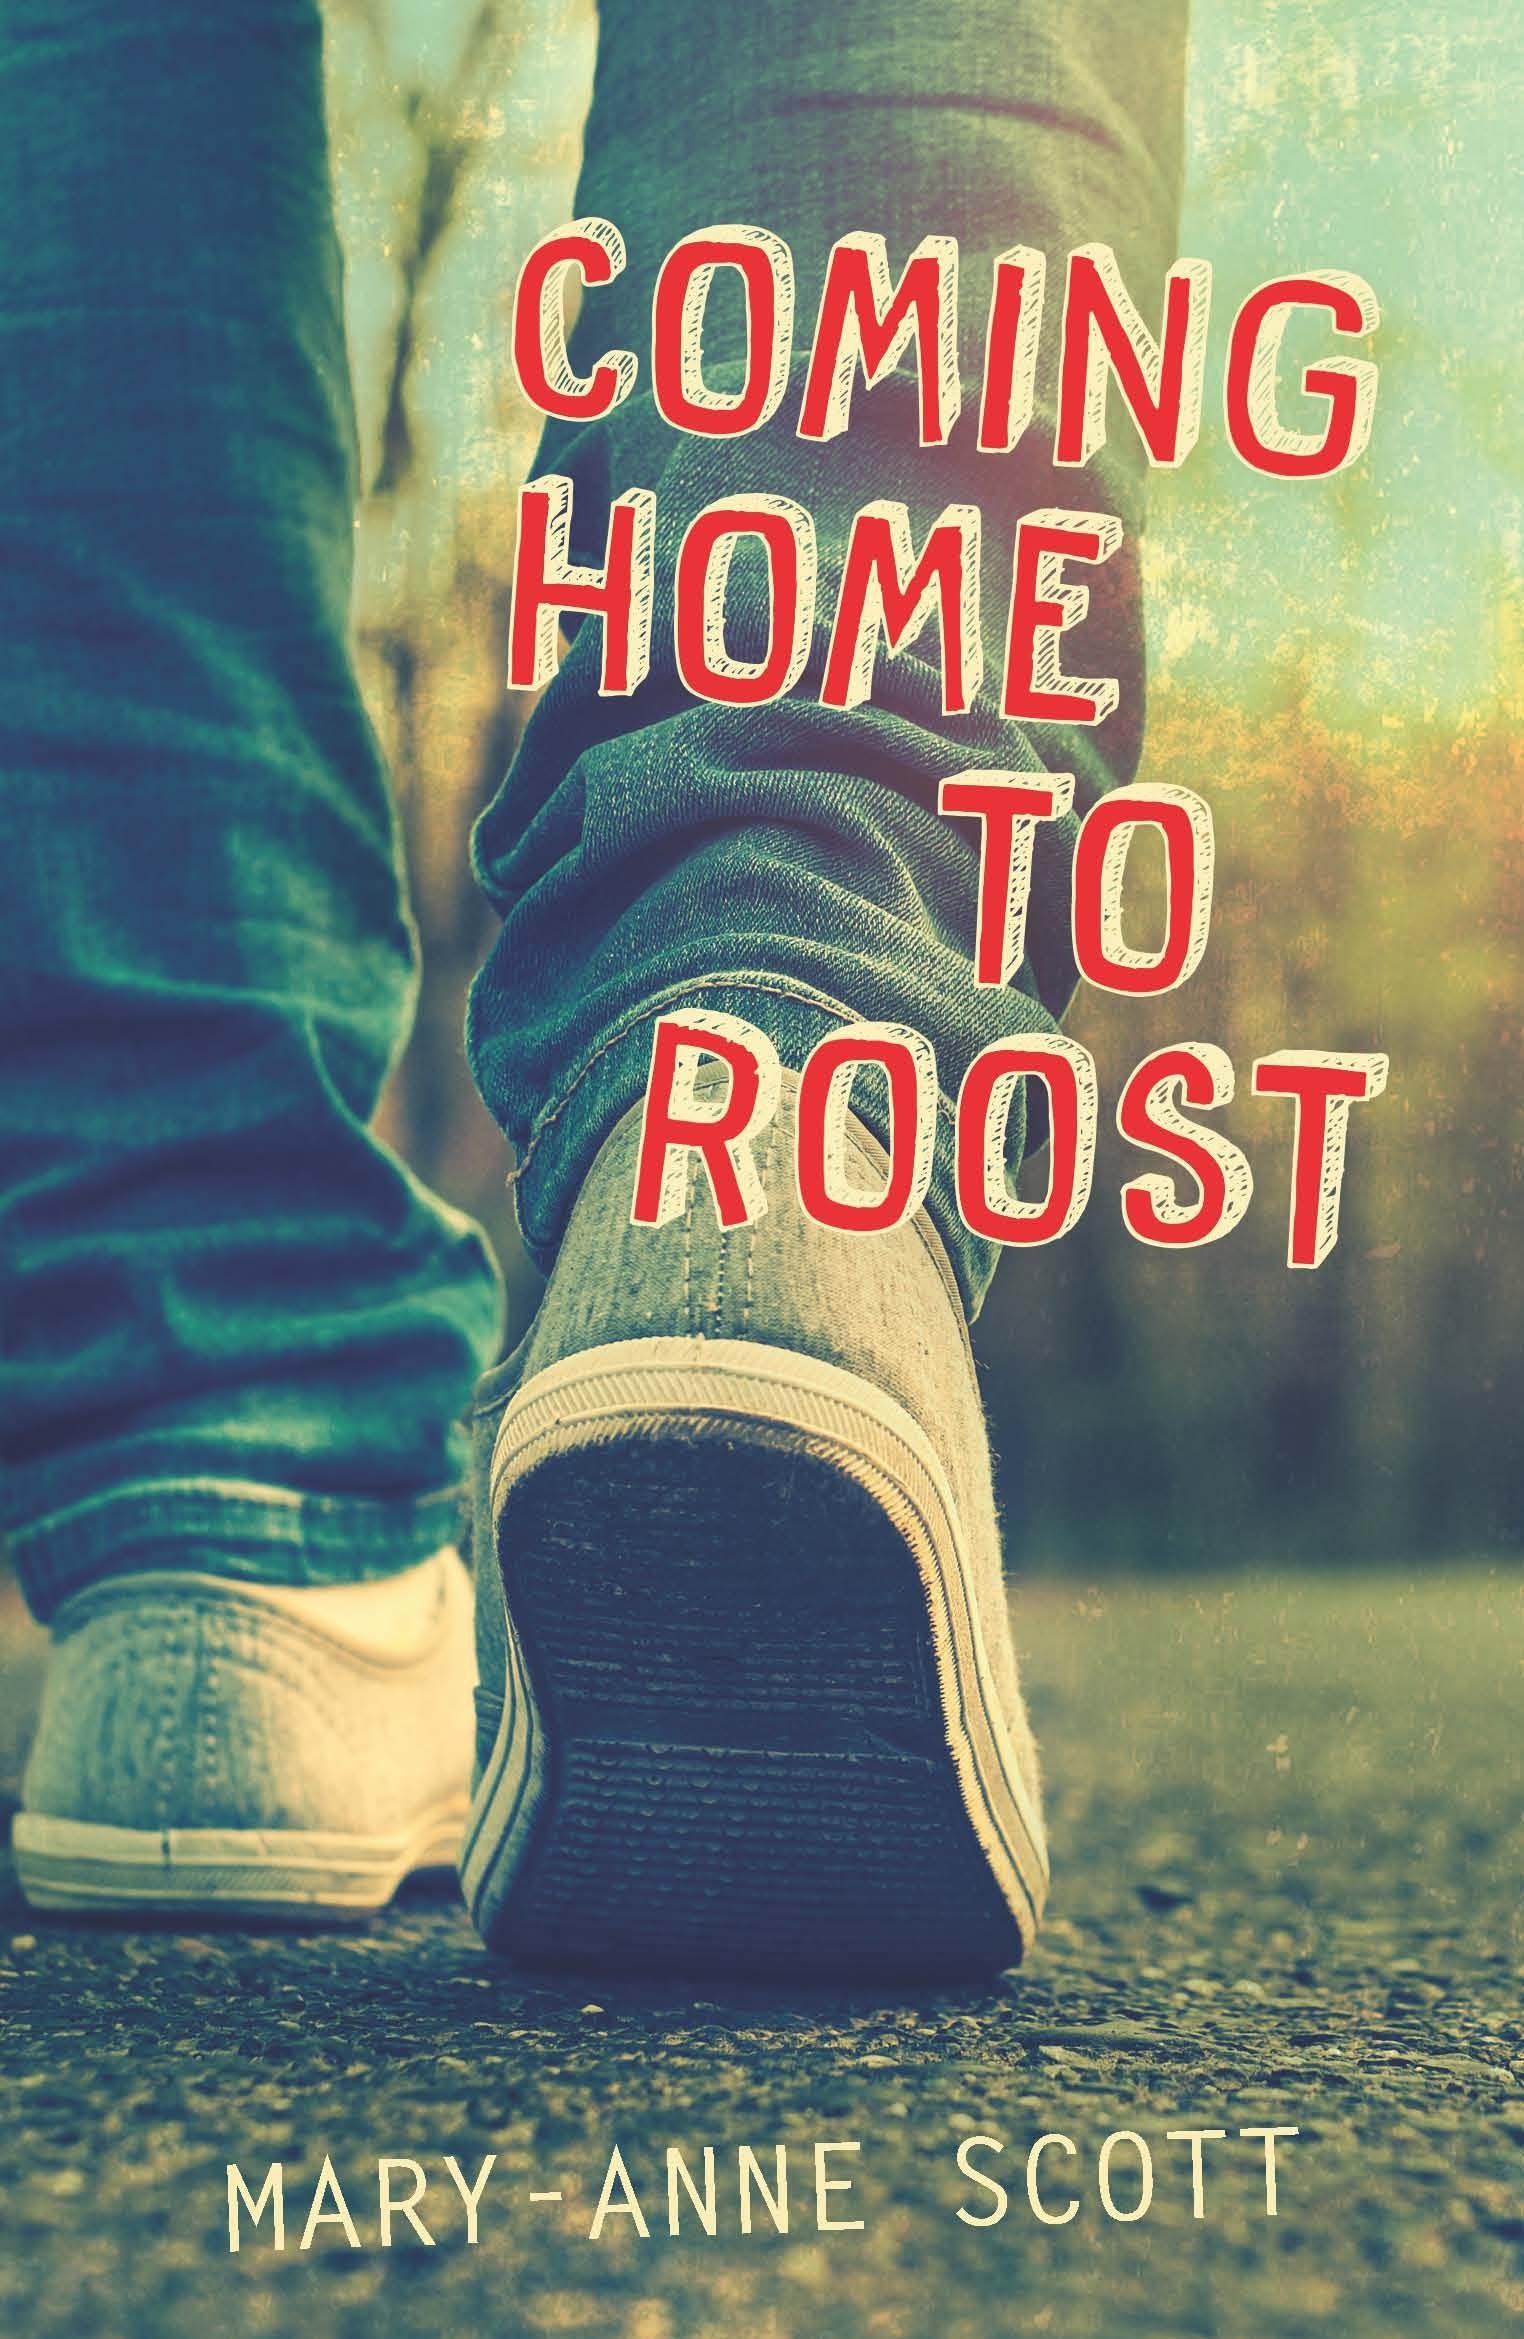 Coming Home to Roost by Mary-anne Scott - Penguin Books Australia